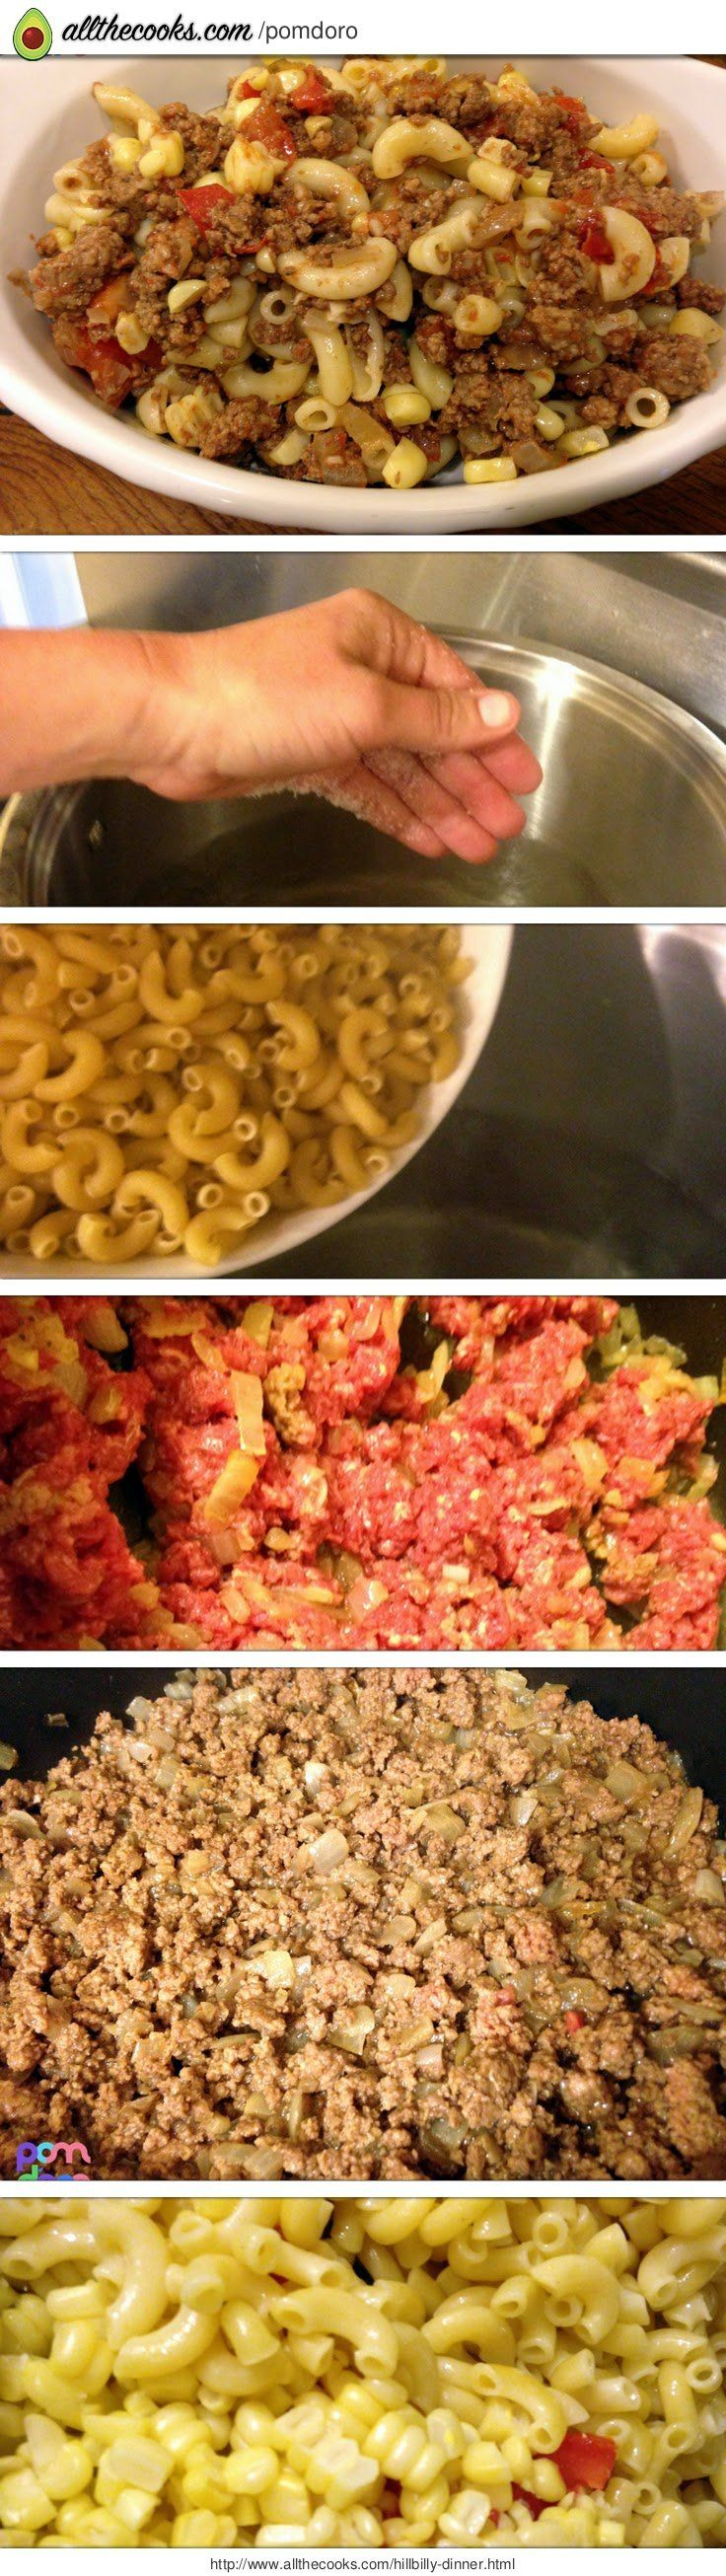 """Hillbilly Dinner! 4.75 stars, 4 reviews. """"Used bison rather than beef and fresh ingredients rather than canned. Very simple dish to prepare with nice texture. Add herbs and spices to your preference for additional flavor."""" @allthecooks #recipe"""